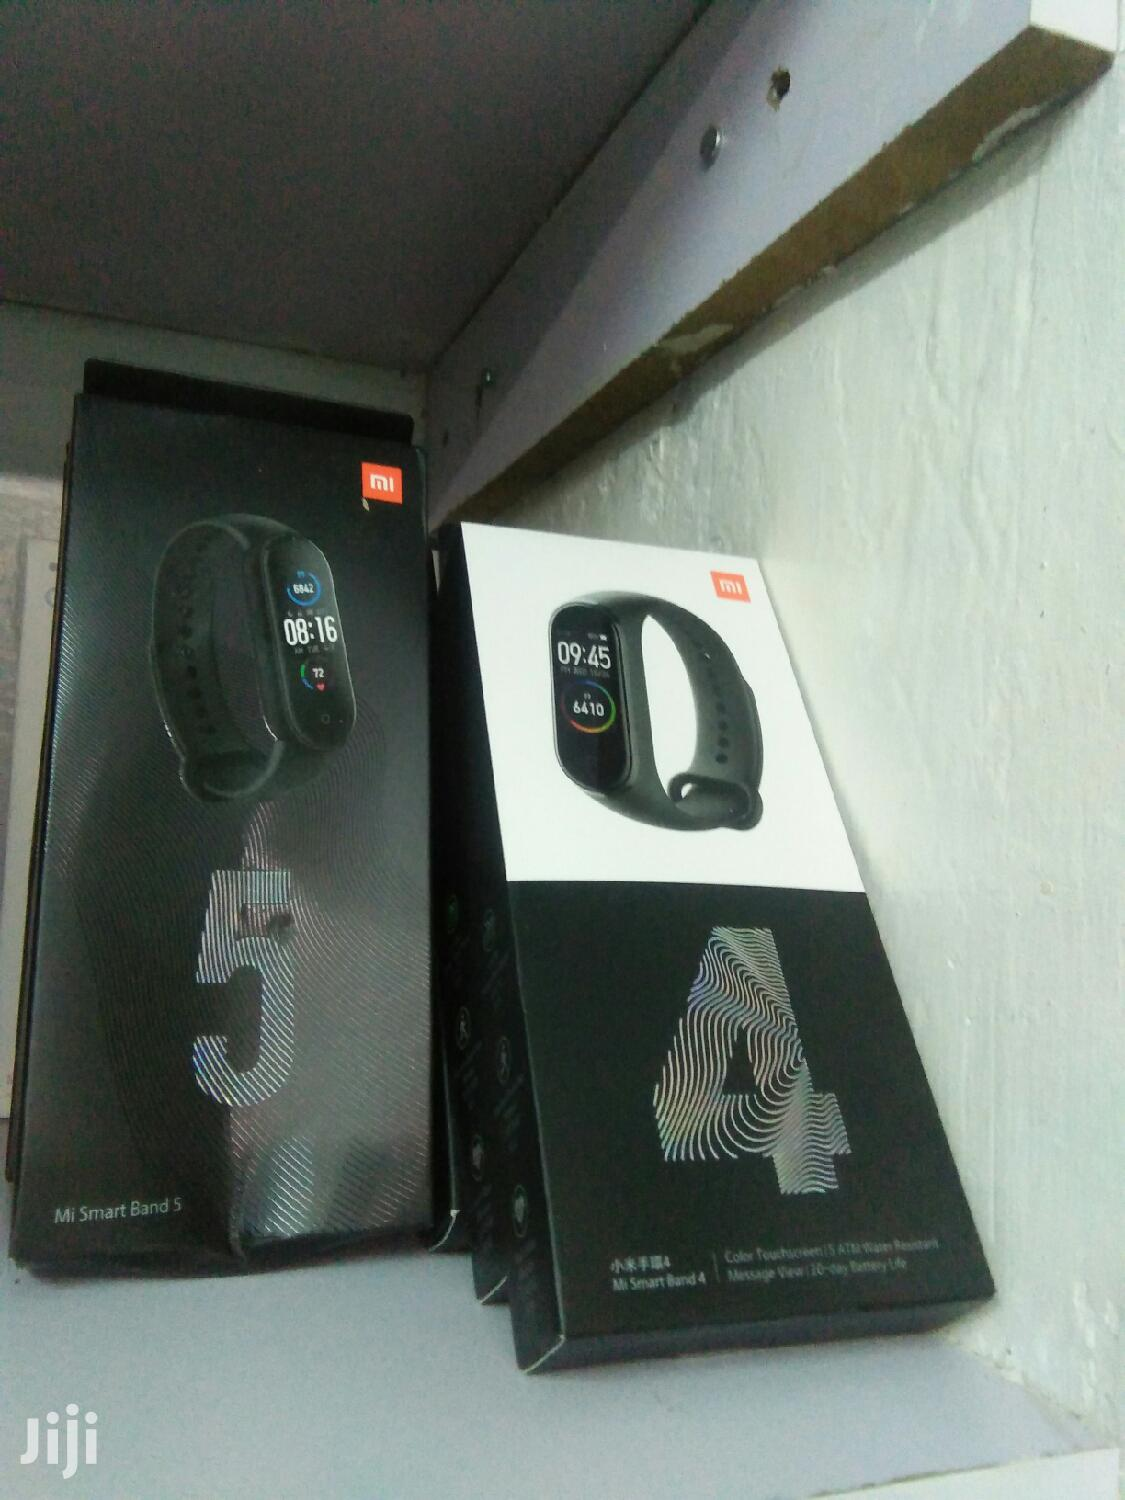 Discount for Xiaomi Mi Band 5 | Smart Watches & Trackers for sale in Nairobi Central, Nairobi, Kenya